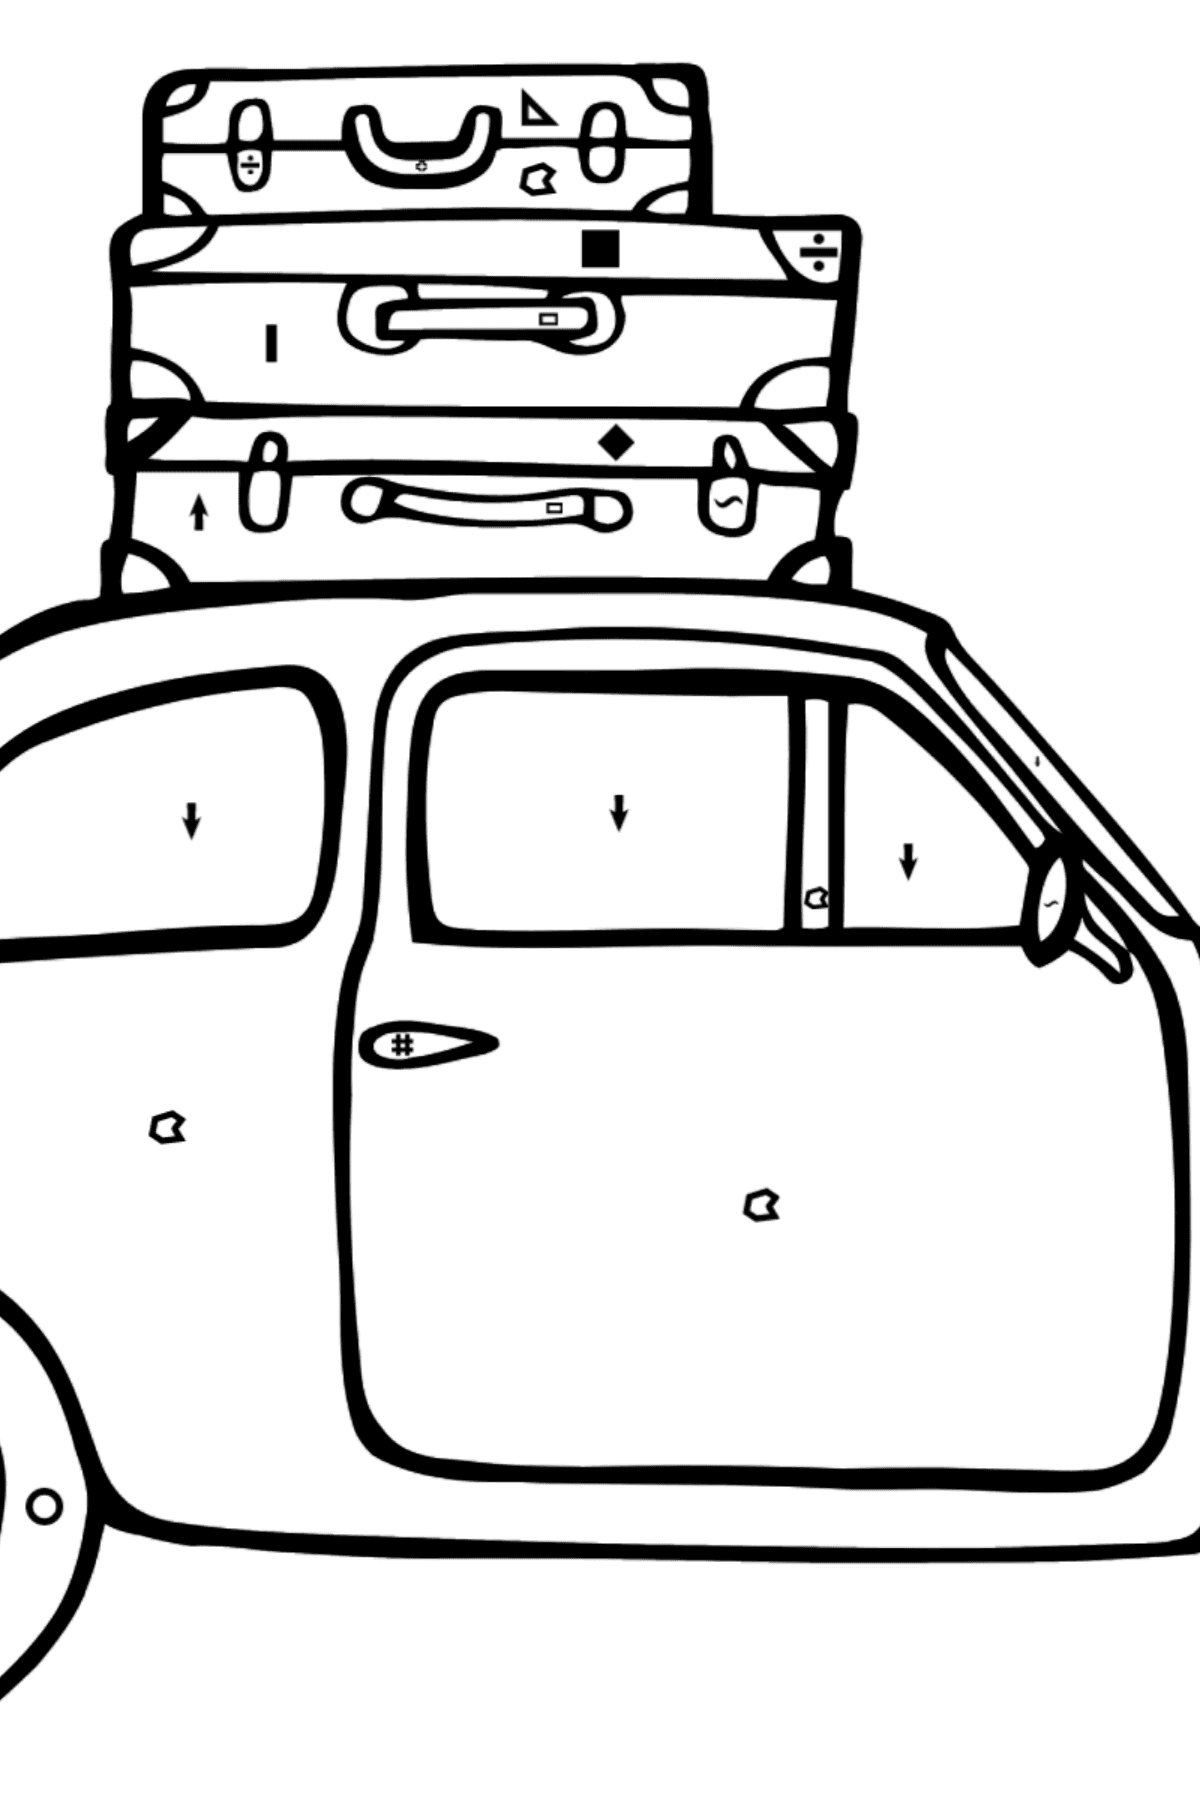 Fiat 600 car coloring page - Coloring by Symbols and Geometric Shapes for Kids